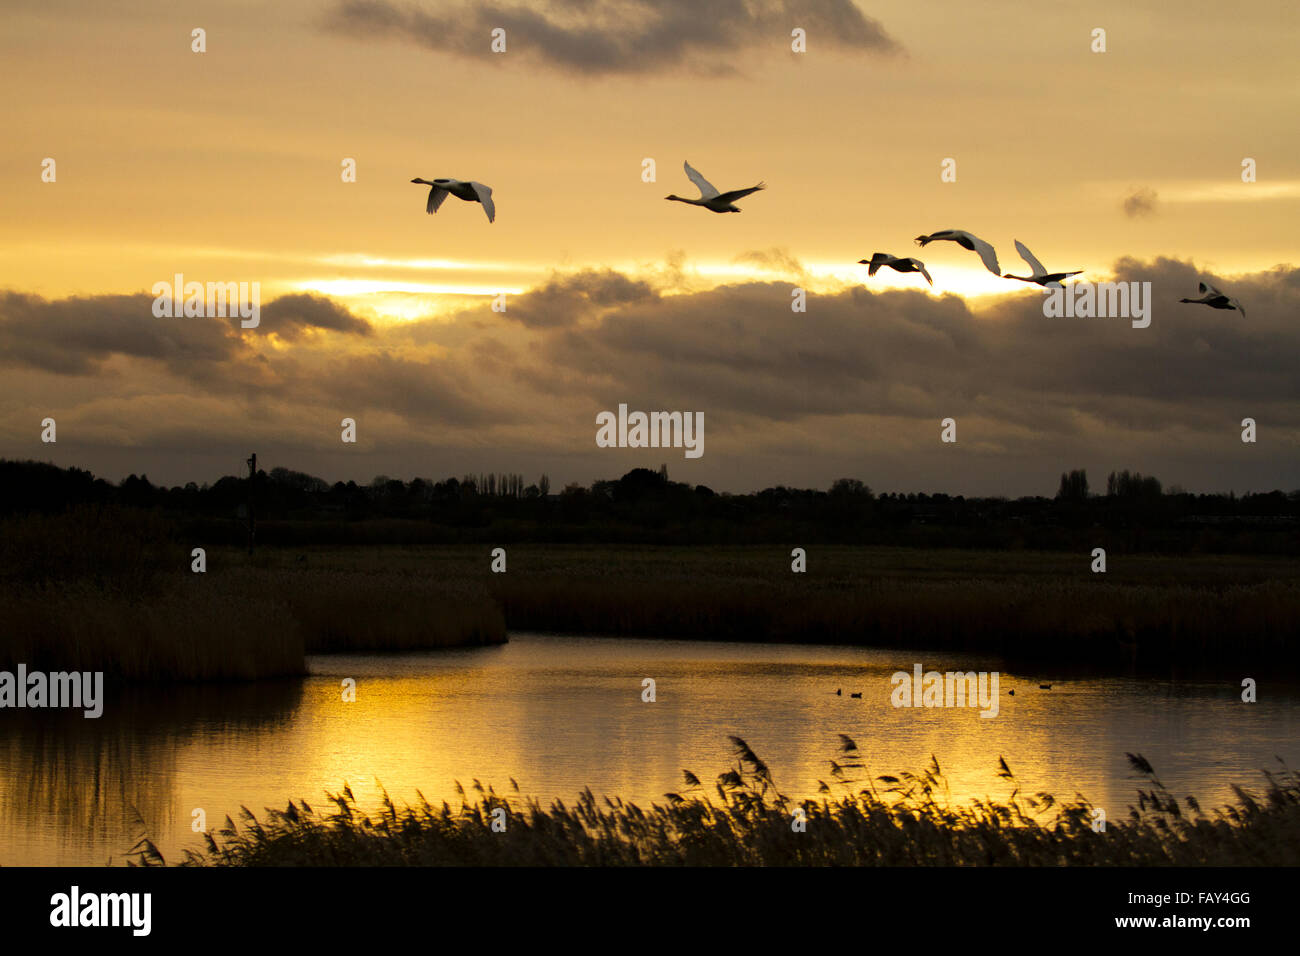 Swans taking off as the sun rises over a lake in Rufford, Lancashire, UK - Stock Image